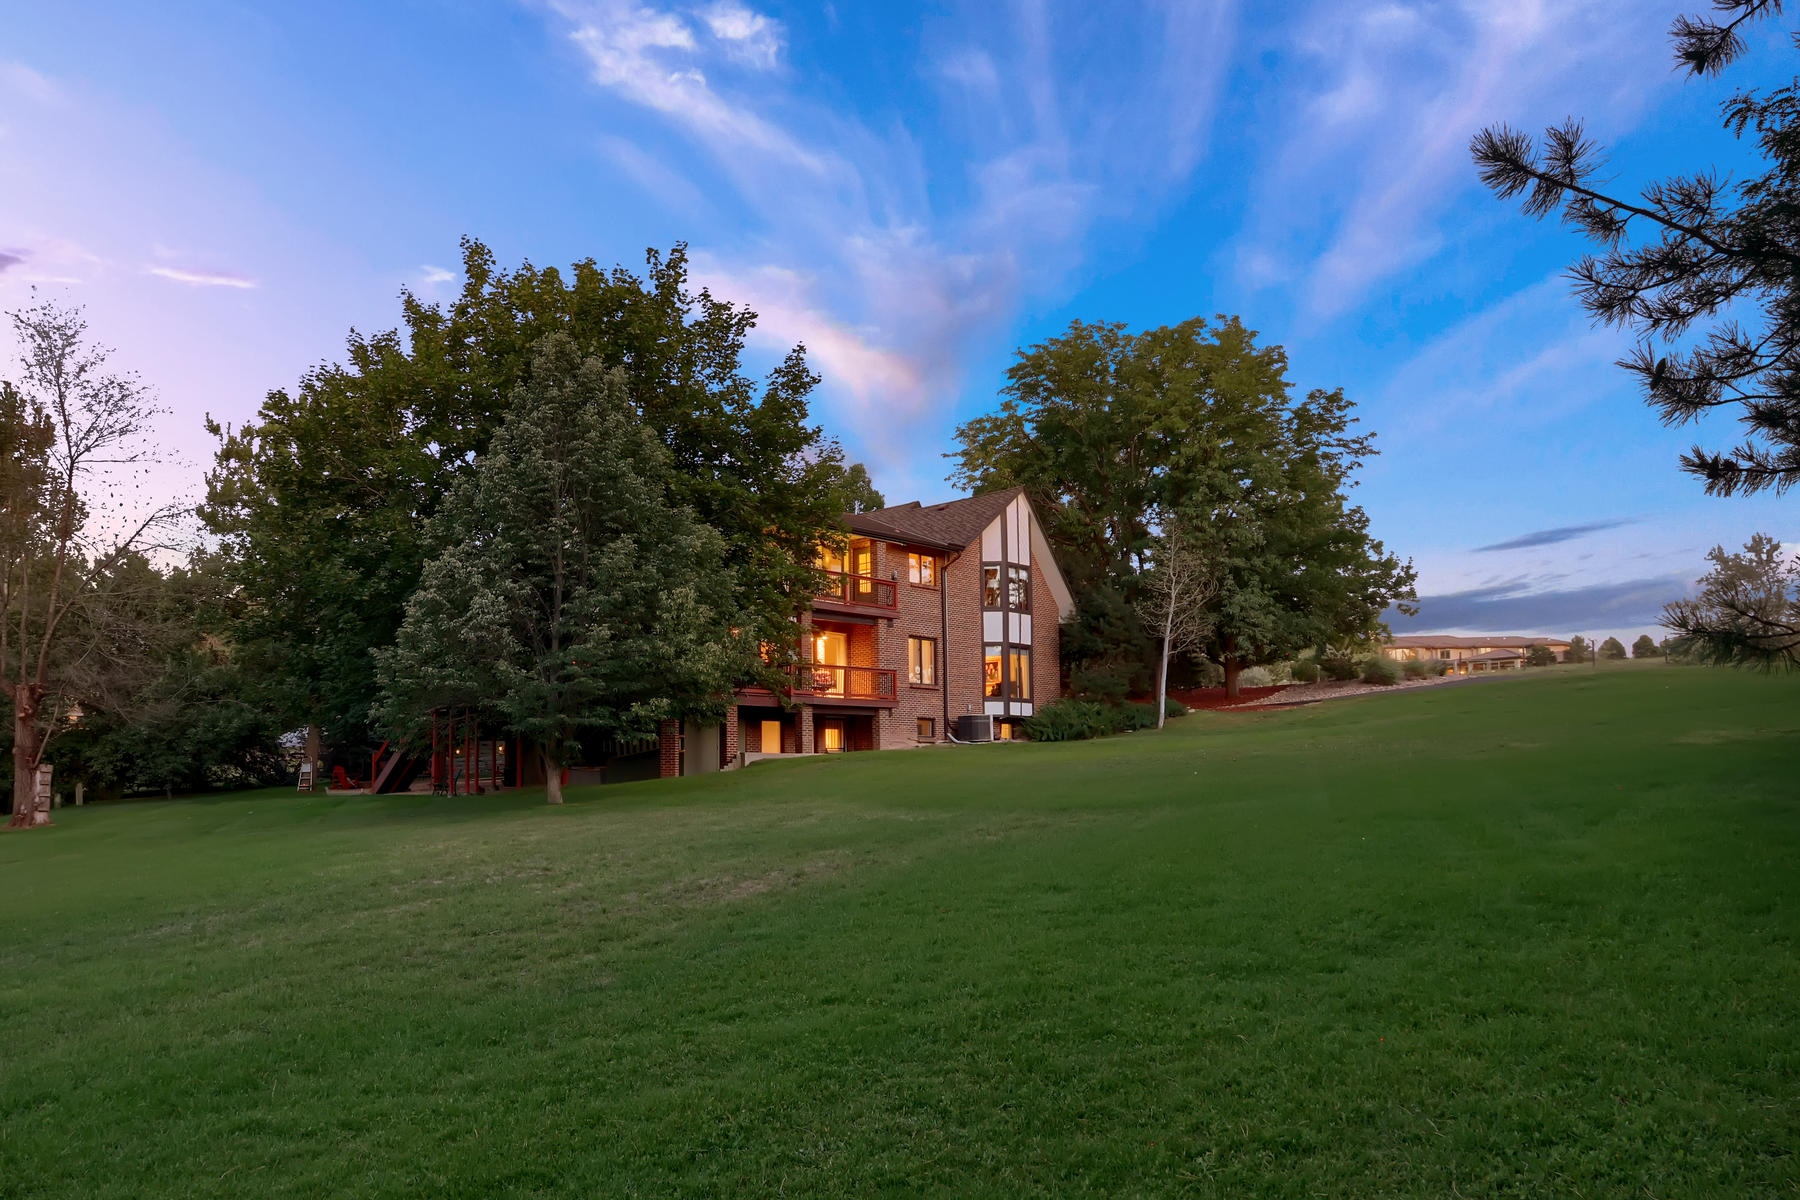 Single Family Homes for Active at Amazing Setting Near DTC 6937 E Berry Avenue Greenwood Village, Colorado 80111 United States